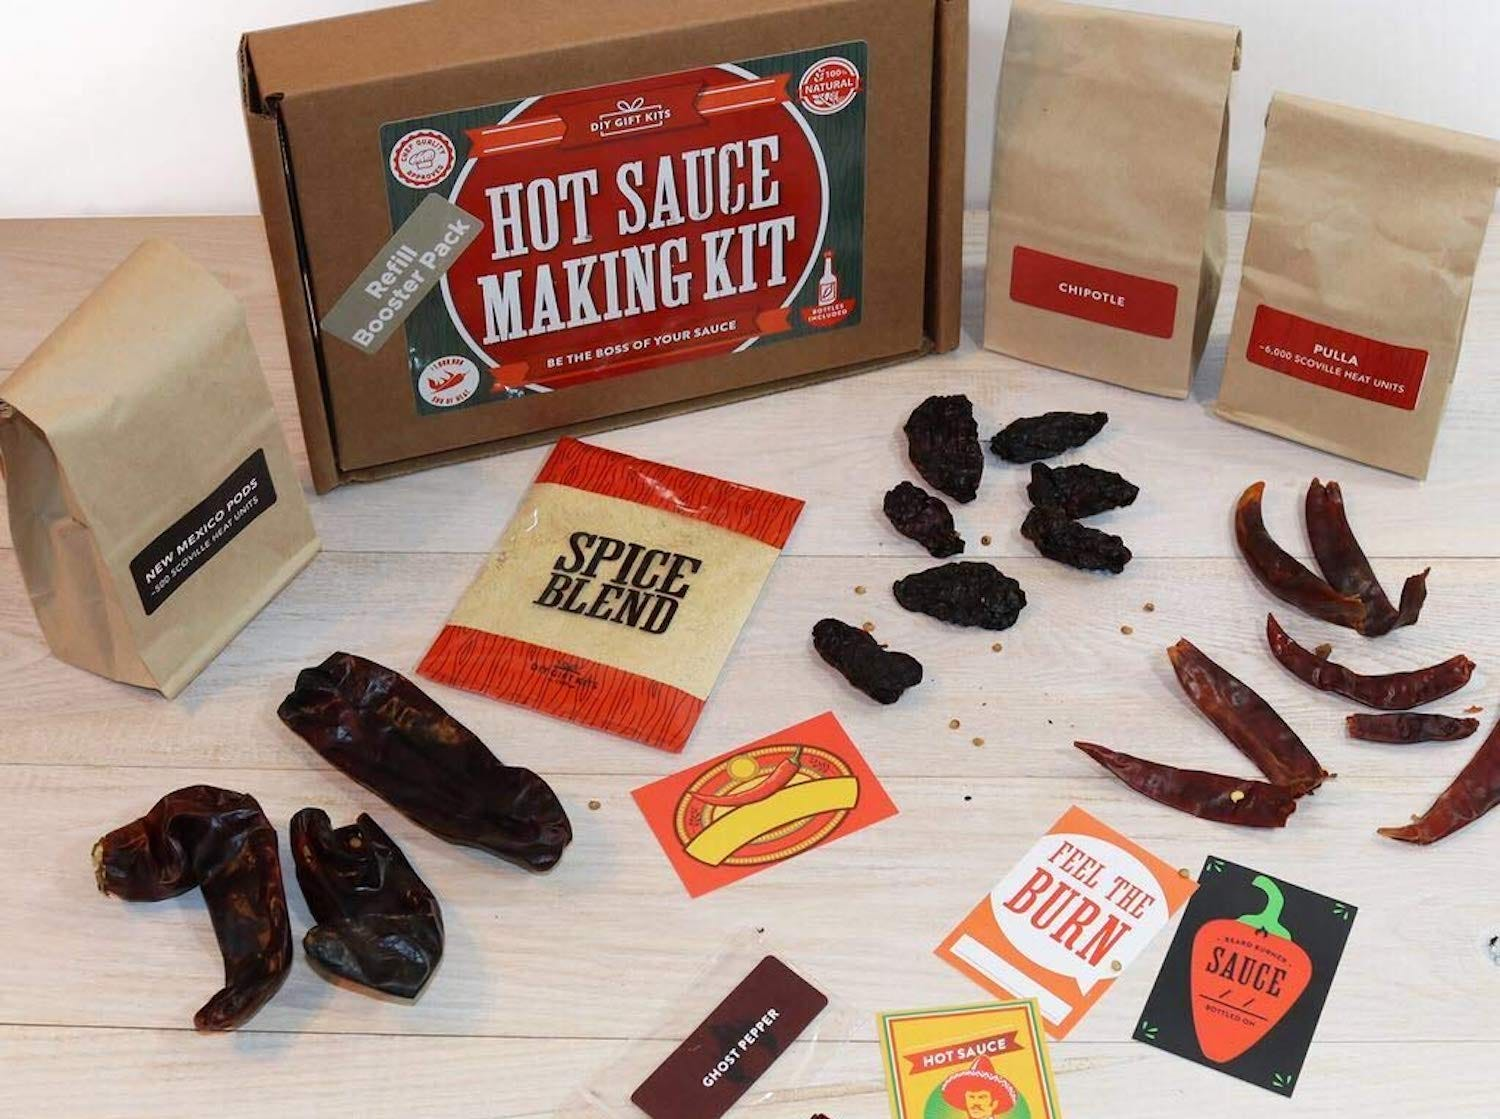 """A brown box labeled """"Hot Sauce Making Kit"""" with assorted peppers and spice blend envelopes sitting on the table nearby"""